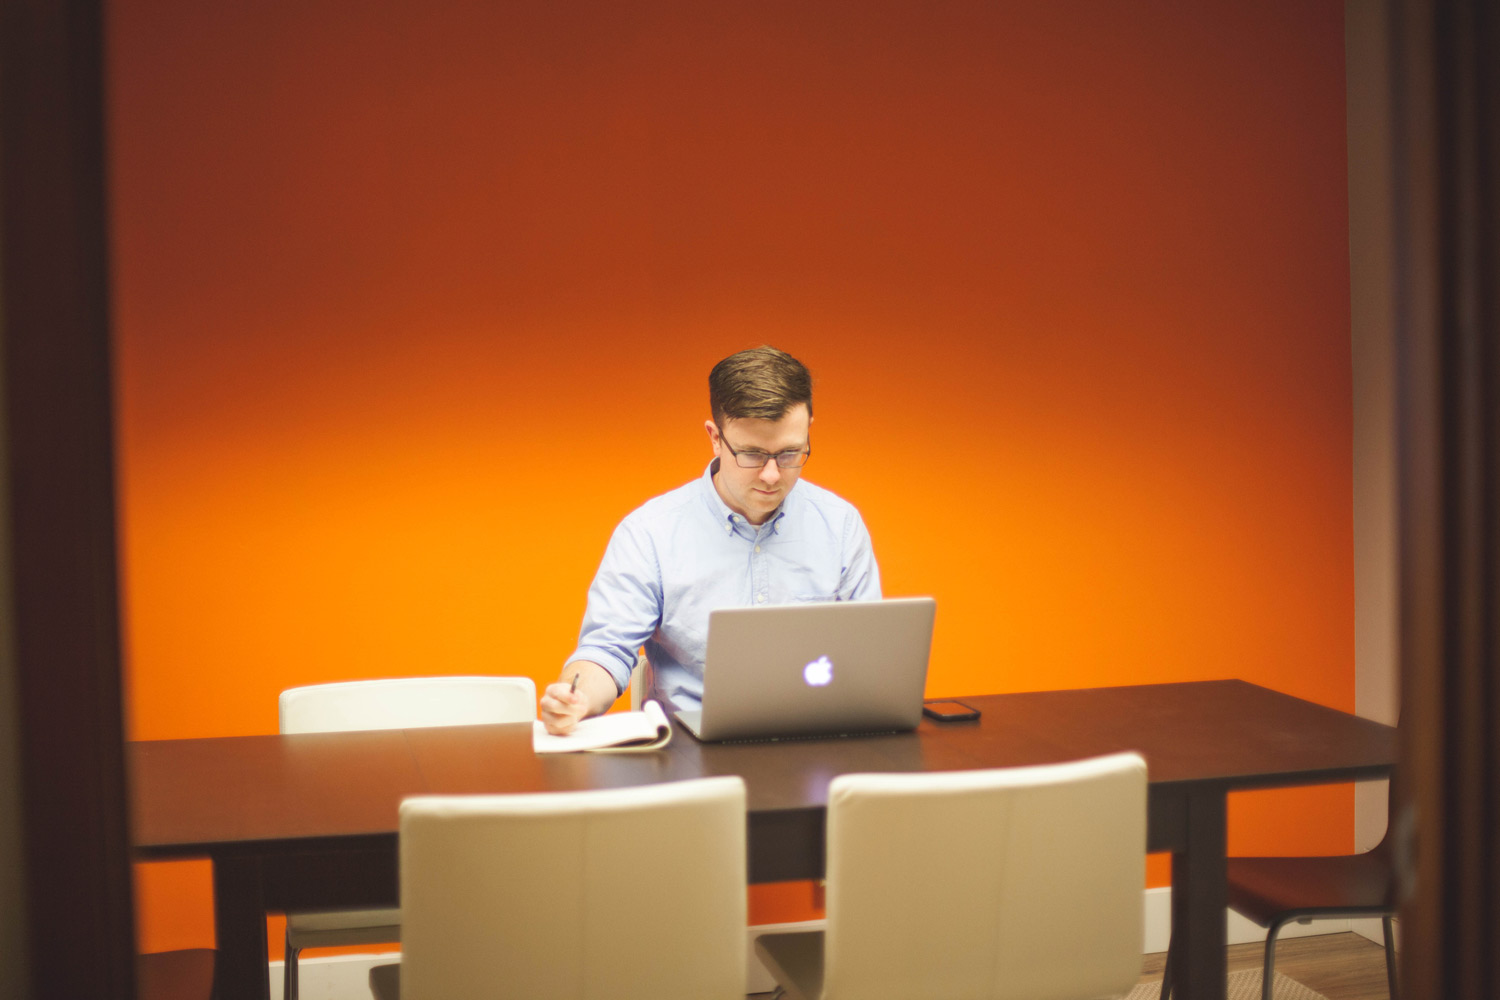 man in a blue shirt sitting at a large table working on a computer and writing in a notebook